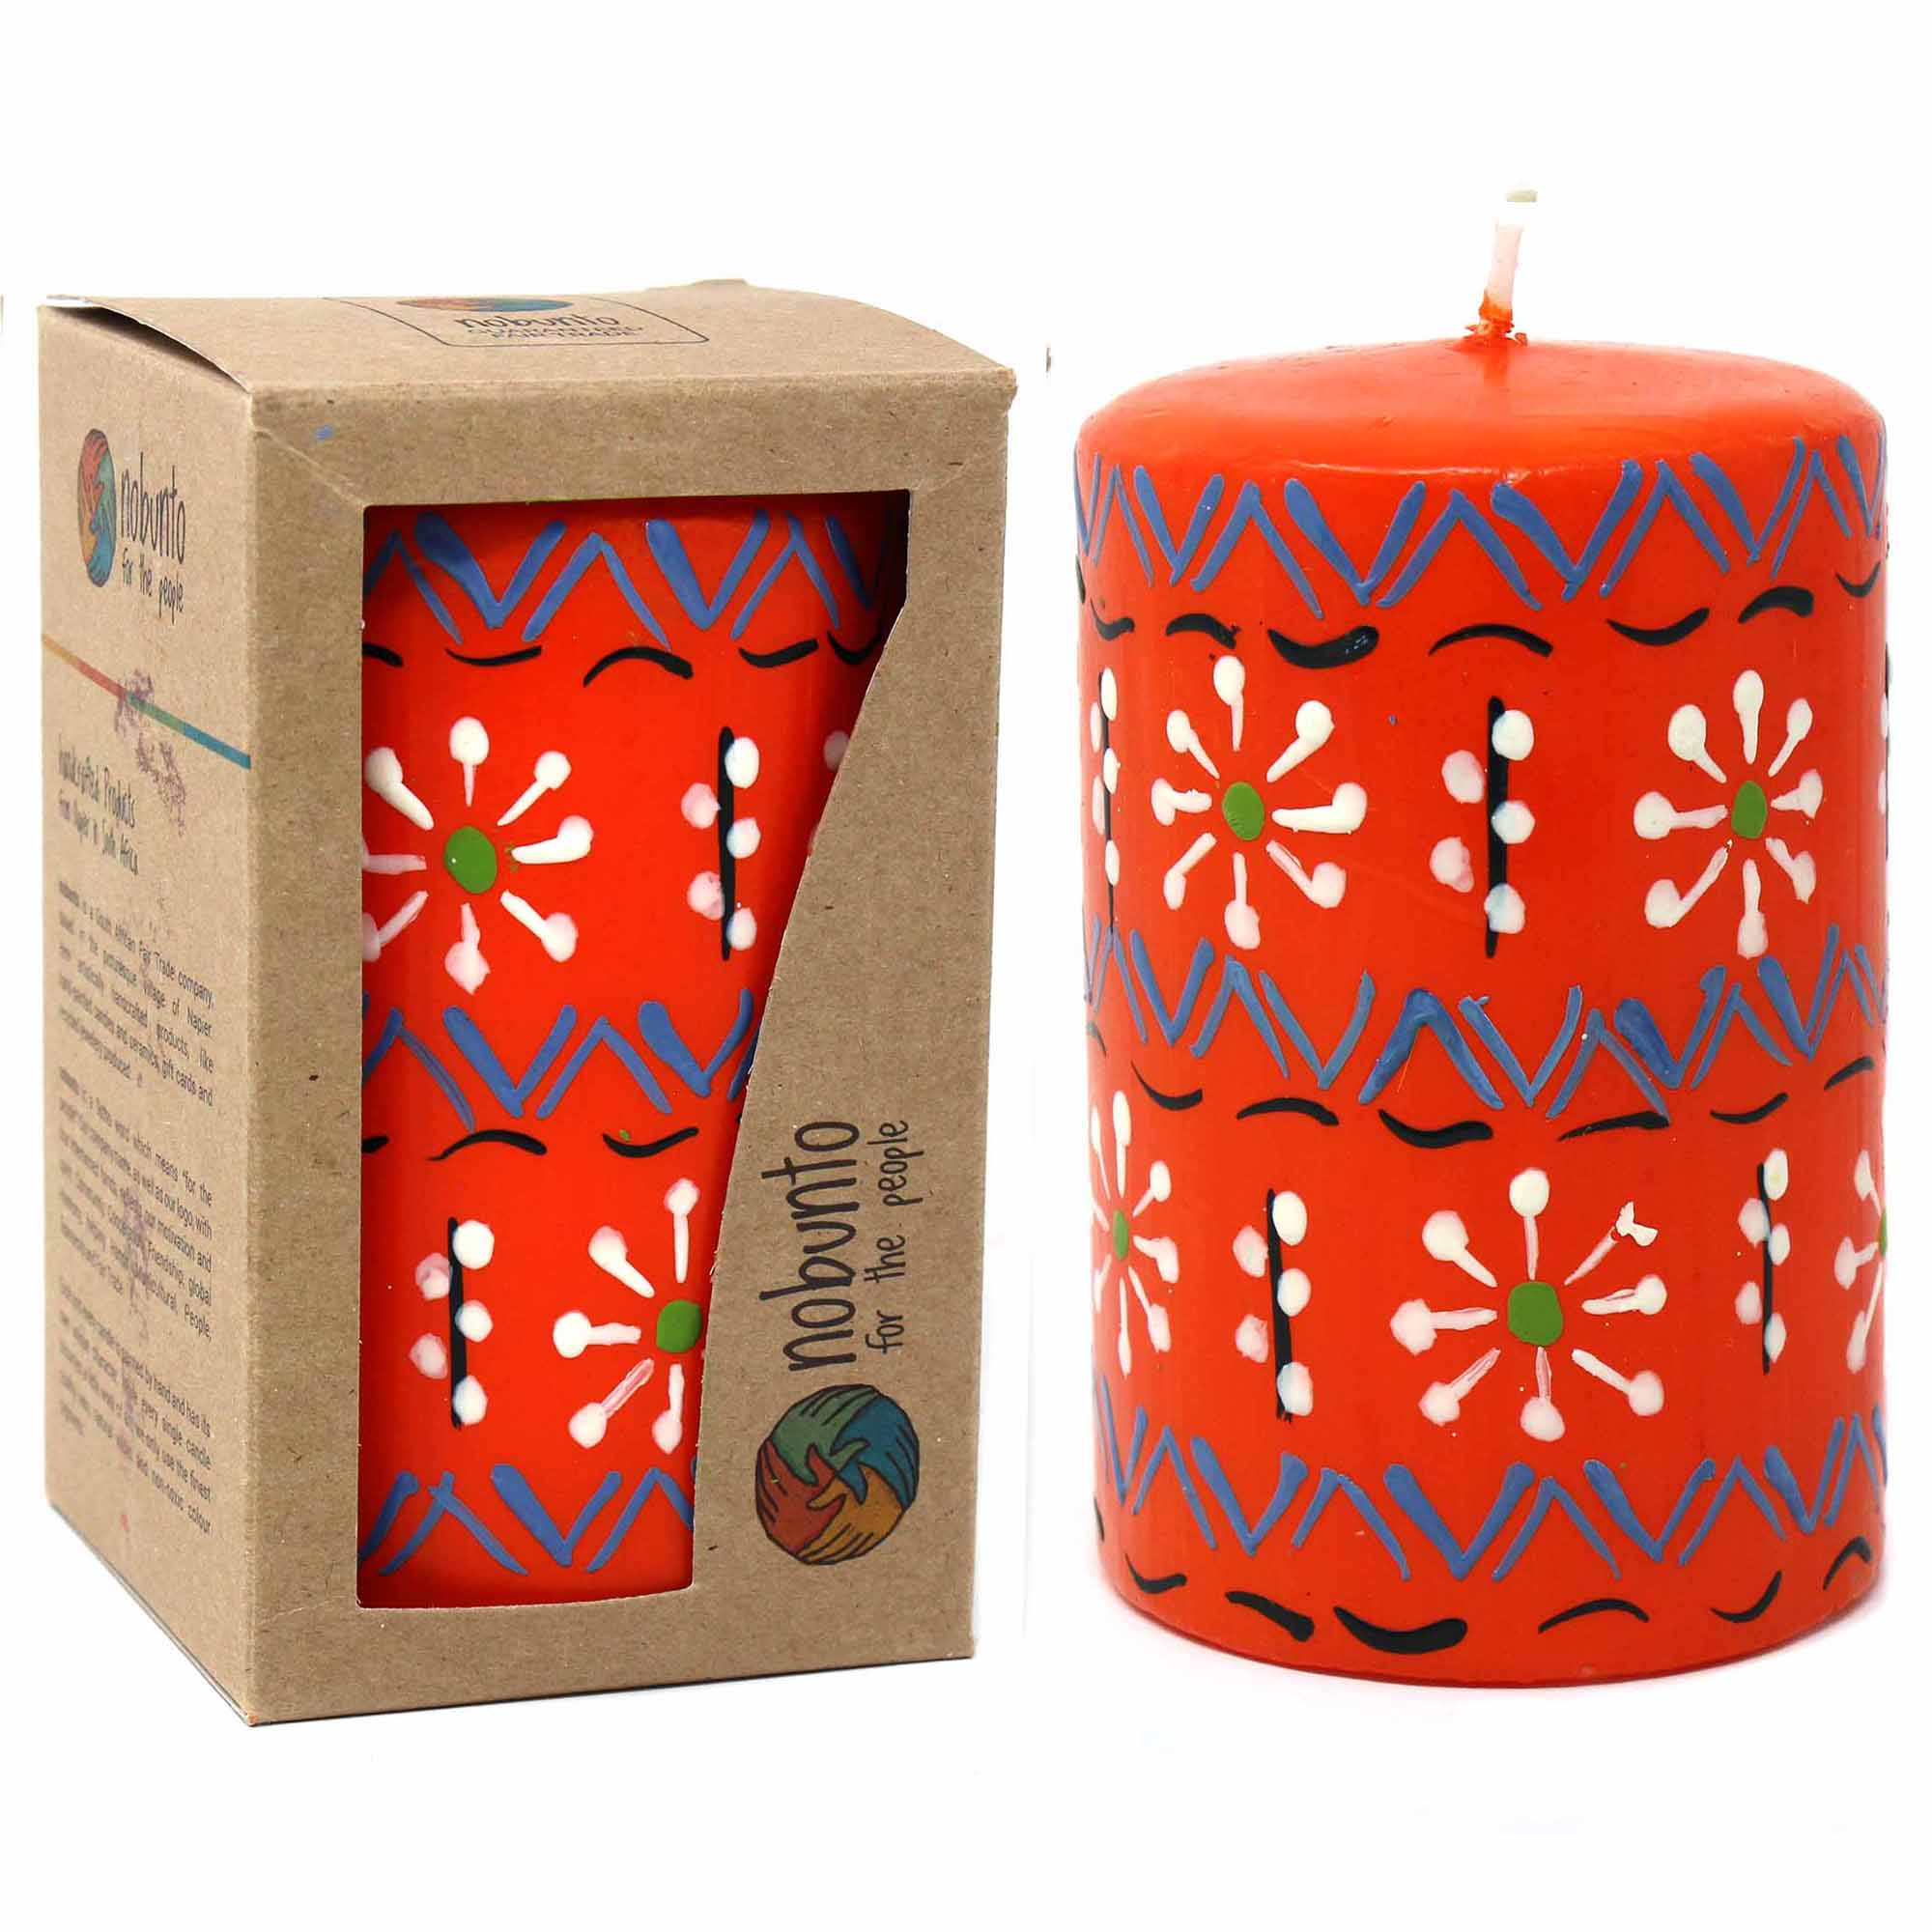 Hand-Painted Orange Pillar Candle in Gift Box, 4-inch (Masika Design)